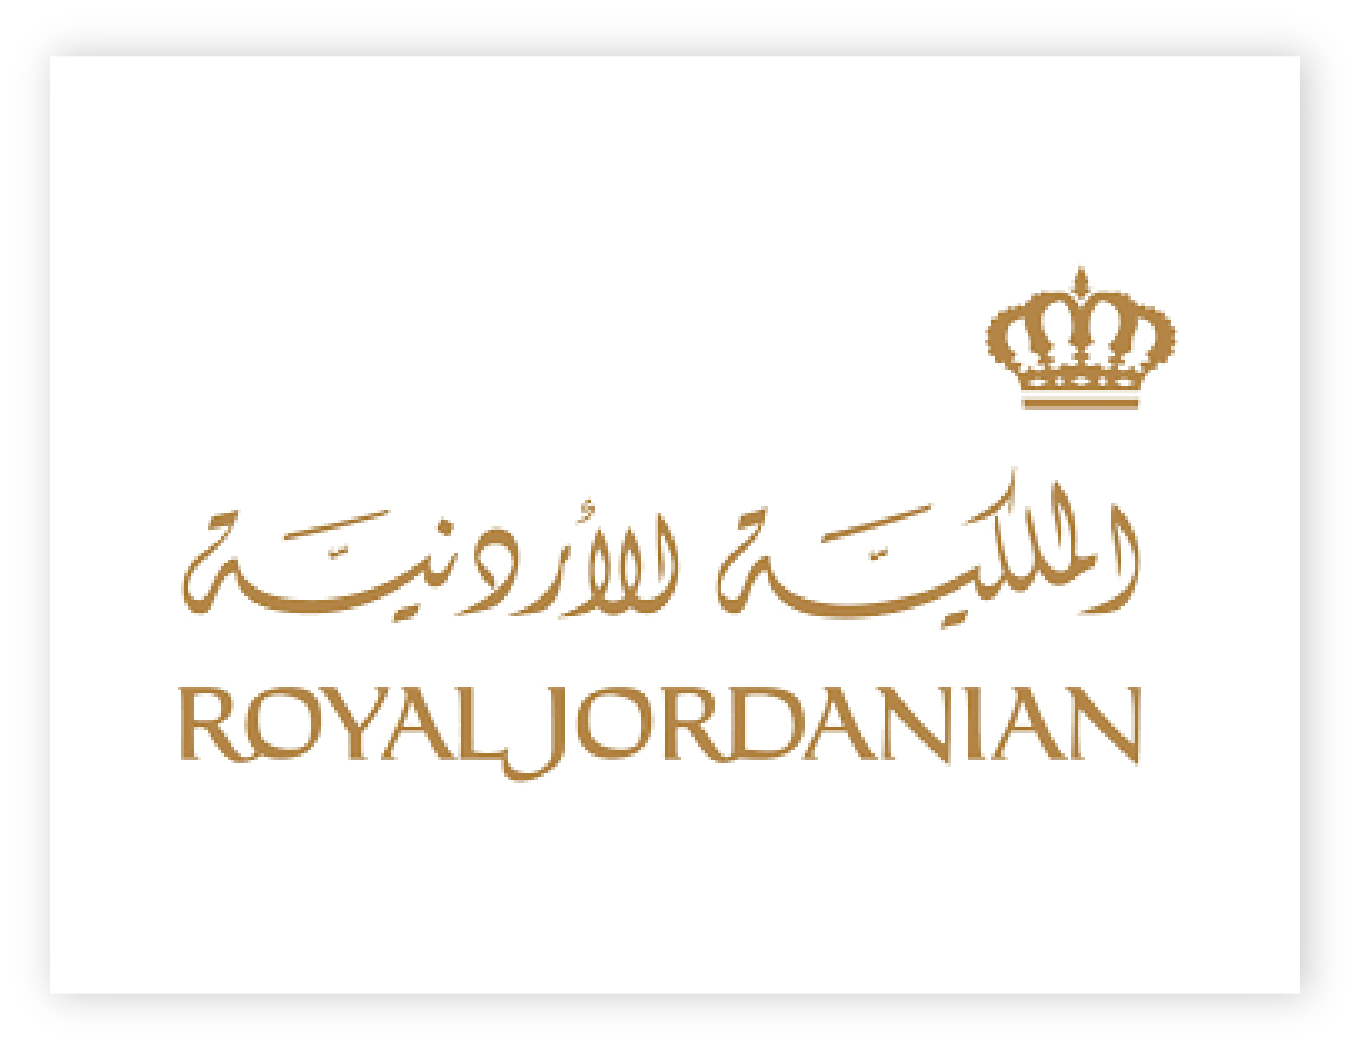 Royal Jordanain